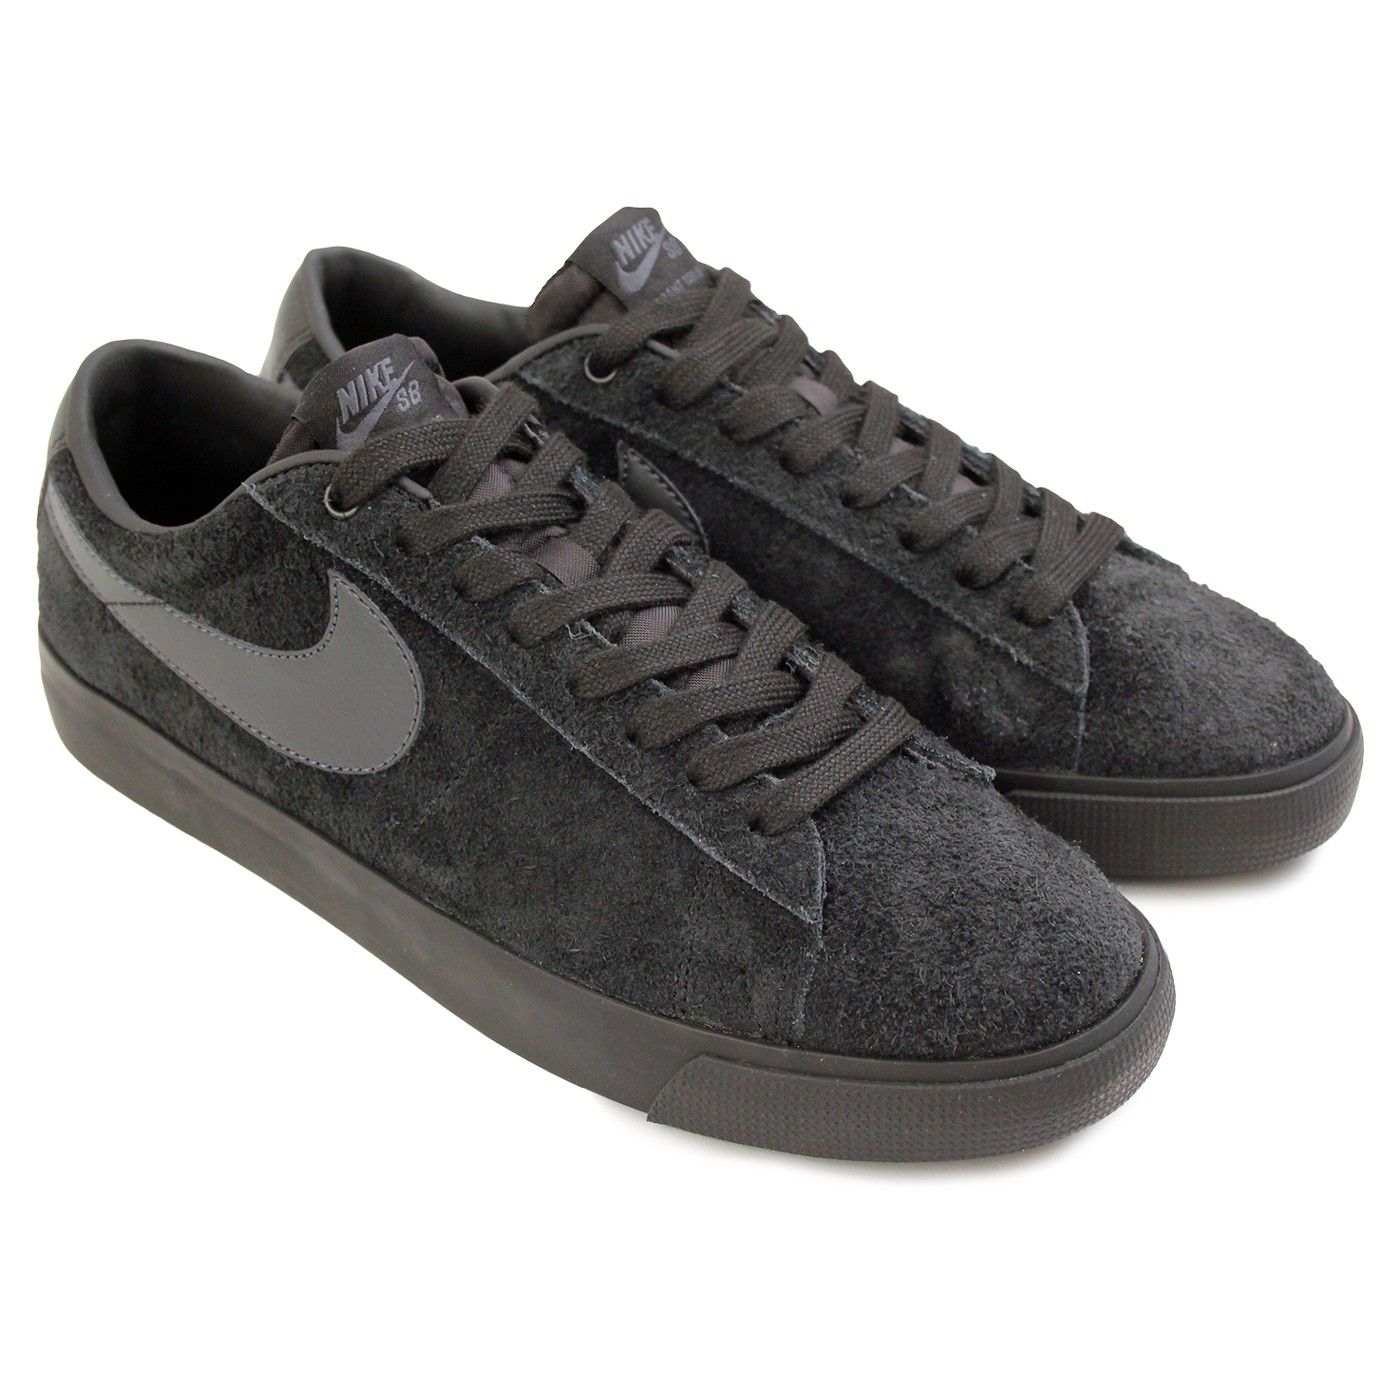 free shipping 0adc6 6508e Blazer Low Grant Taylor Shoes in Ivory / Cinnabar by Nike SB ...